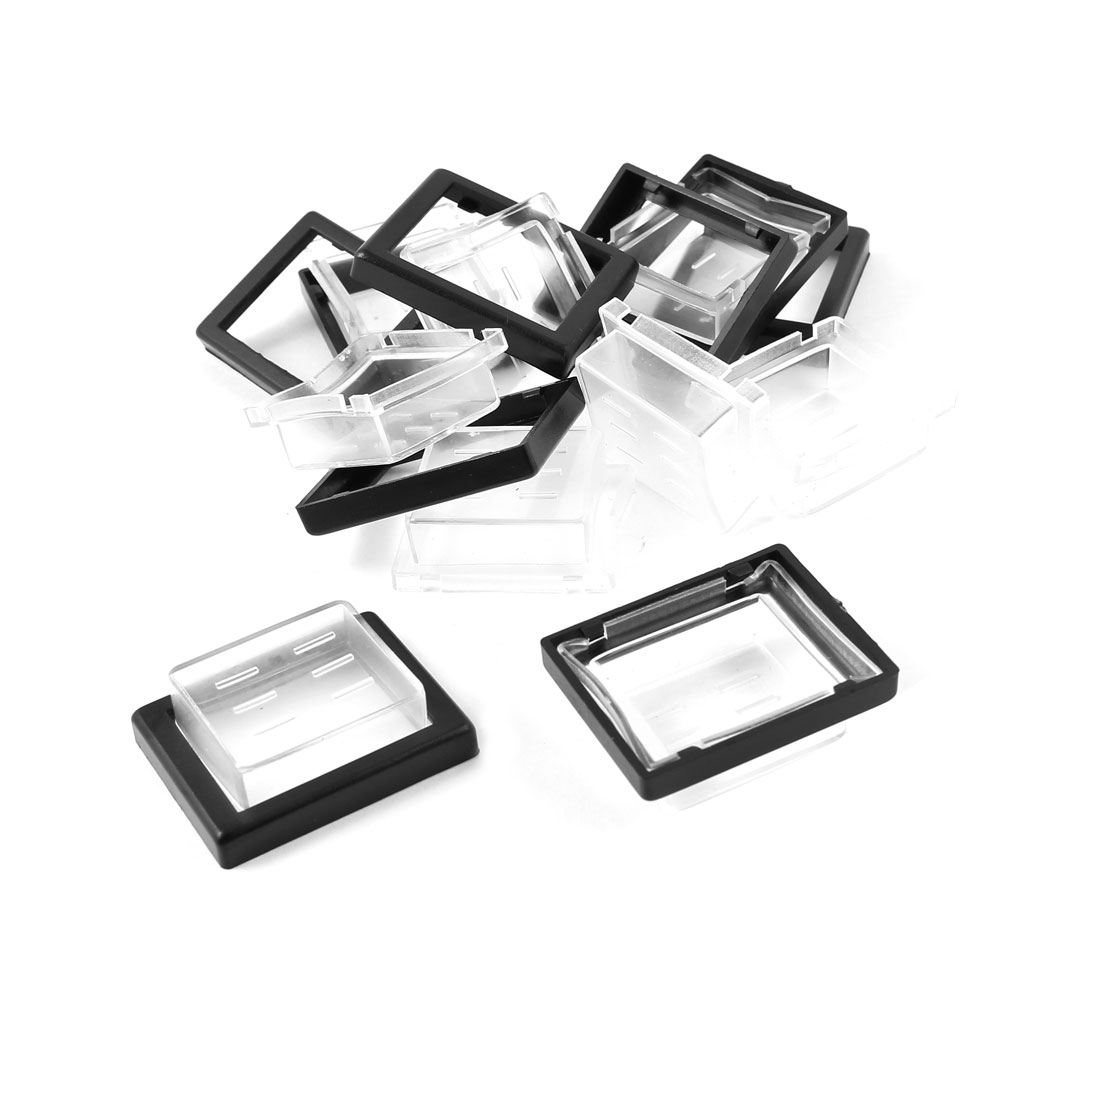 10pcs Waterproof Cover Cap Case Guard for 26mmx20mm Head Rocker Switch